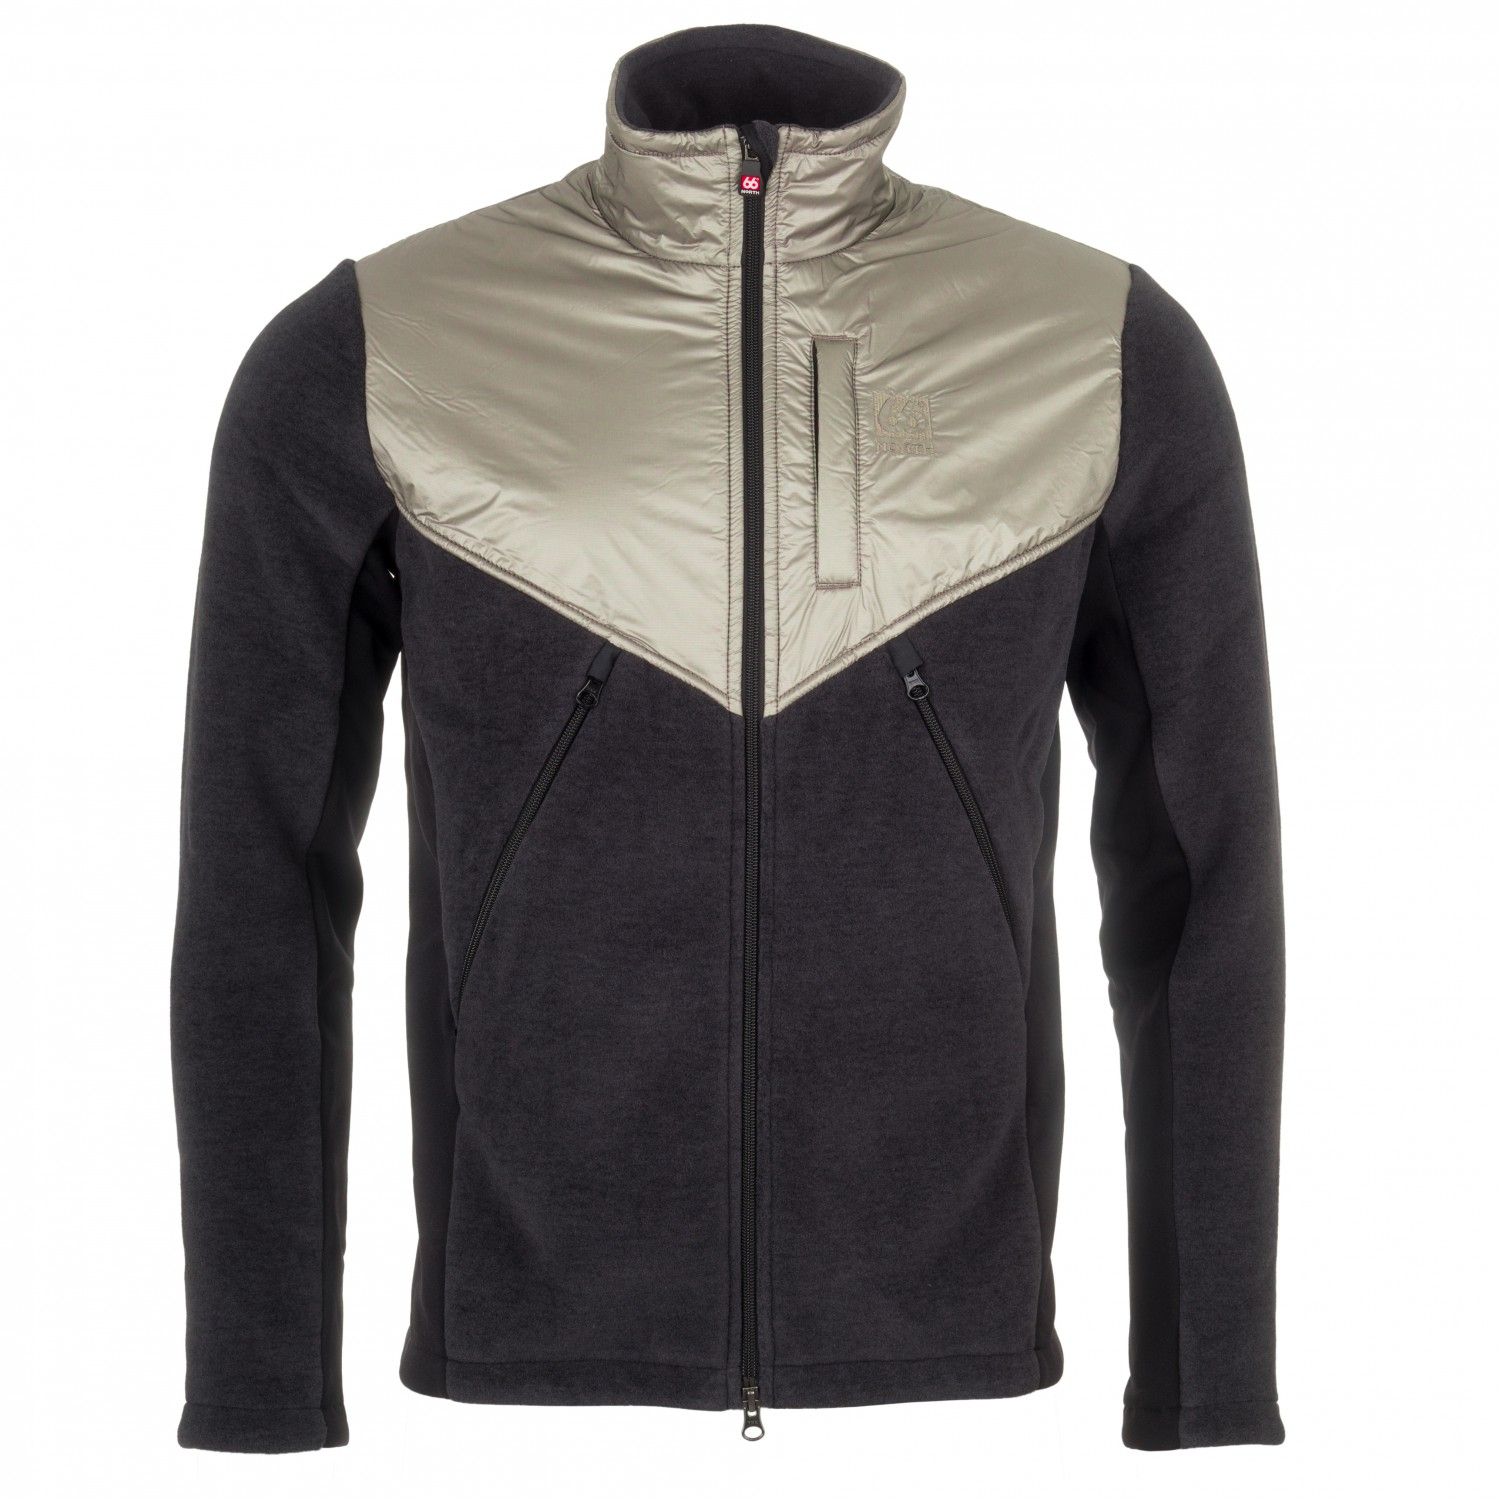 53f962ecd 66 North Askja Fleece Jacket - Fleece jacket Men's | Buy online ...